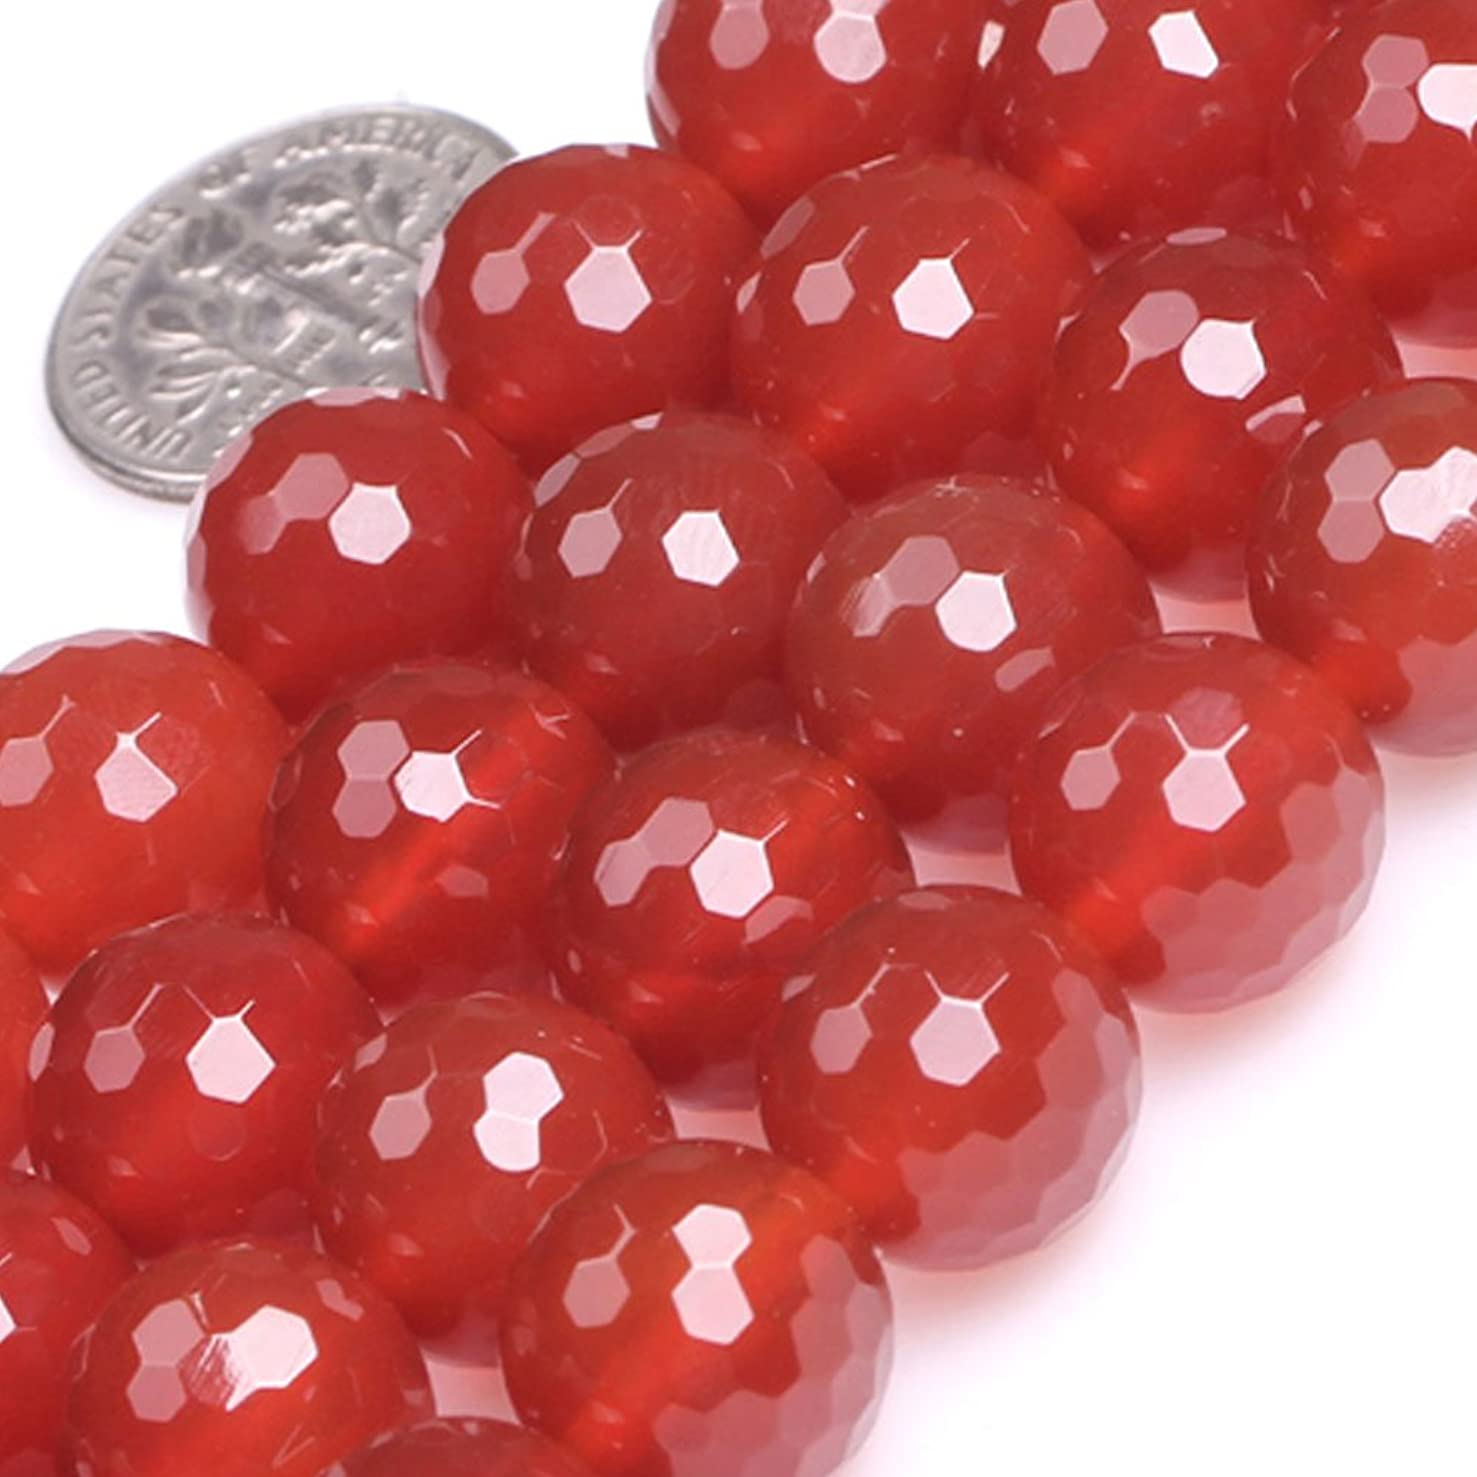 GEM-Inside Red Agate Gemstone Loose Beads Natural 12mm Round Faceted Crystal Energy Stone Power for Jewelry Making 15